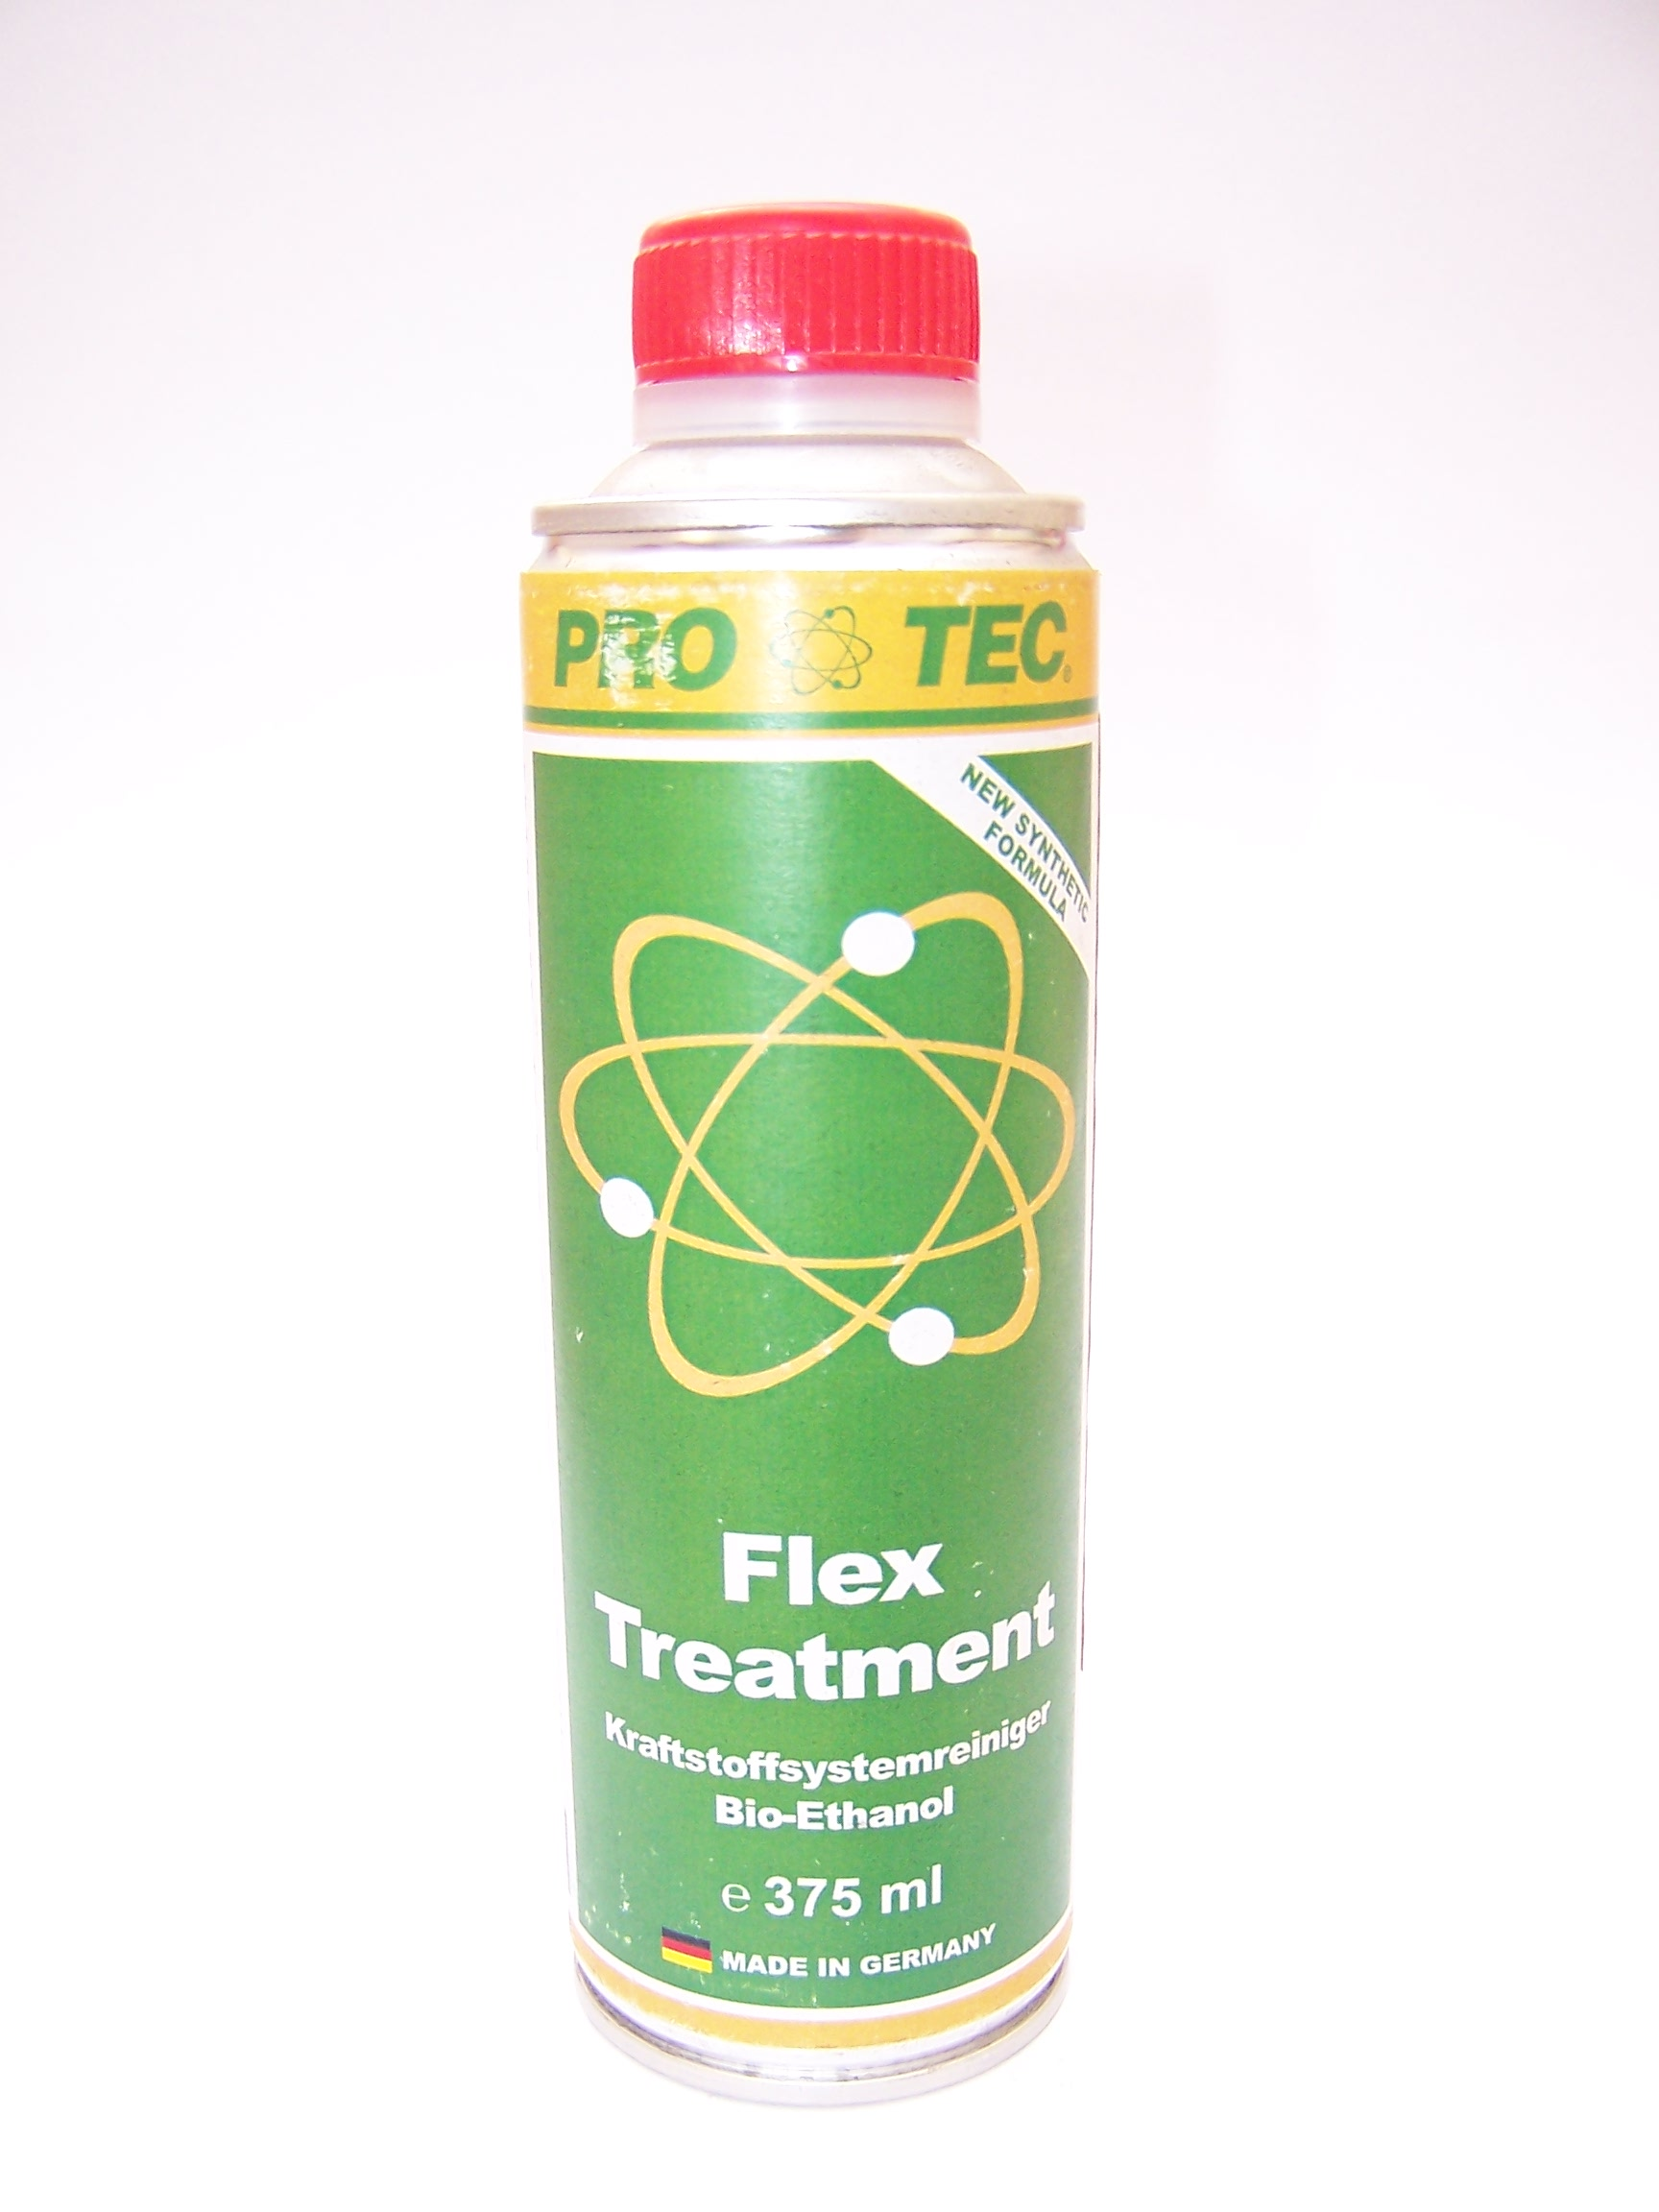 PRO-TEC Flex Treatment